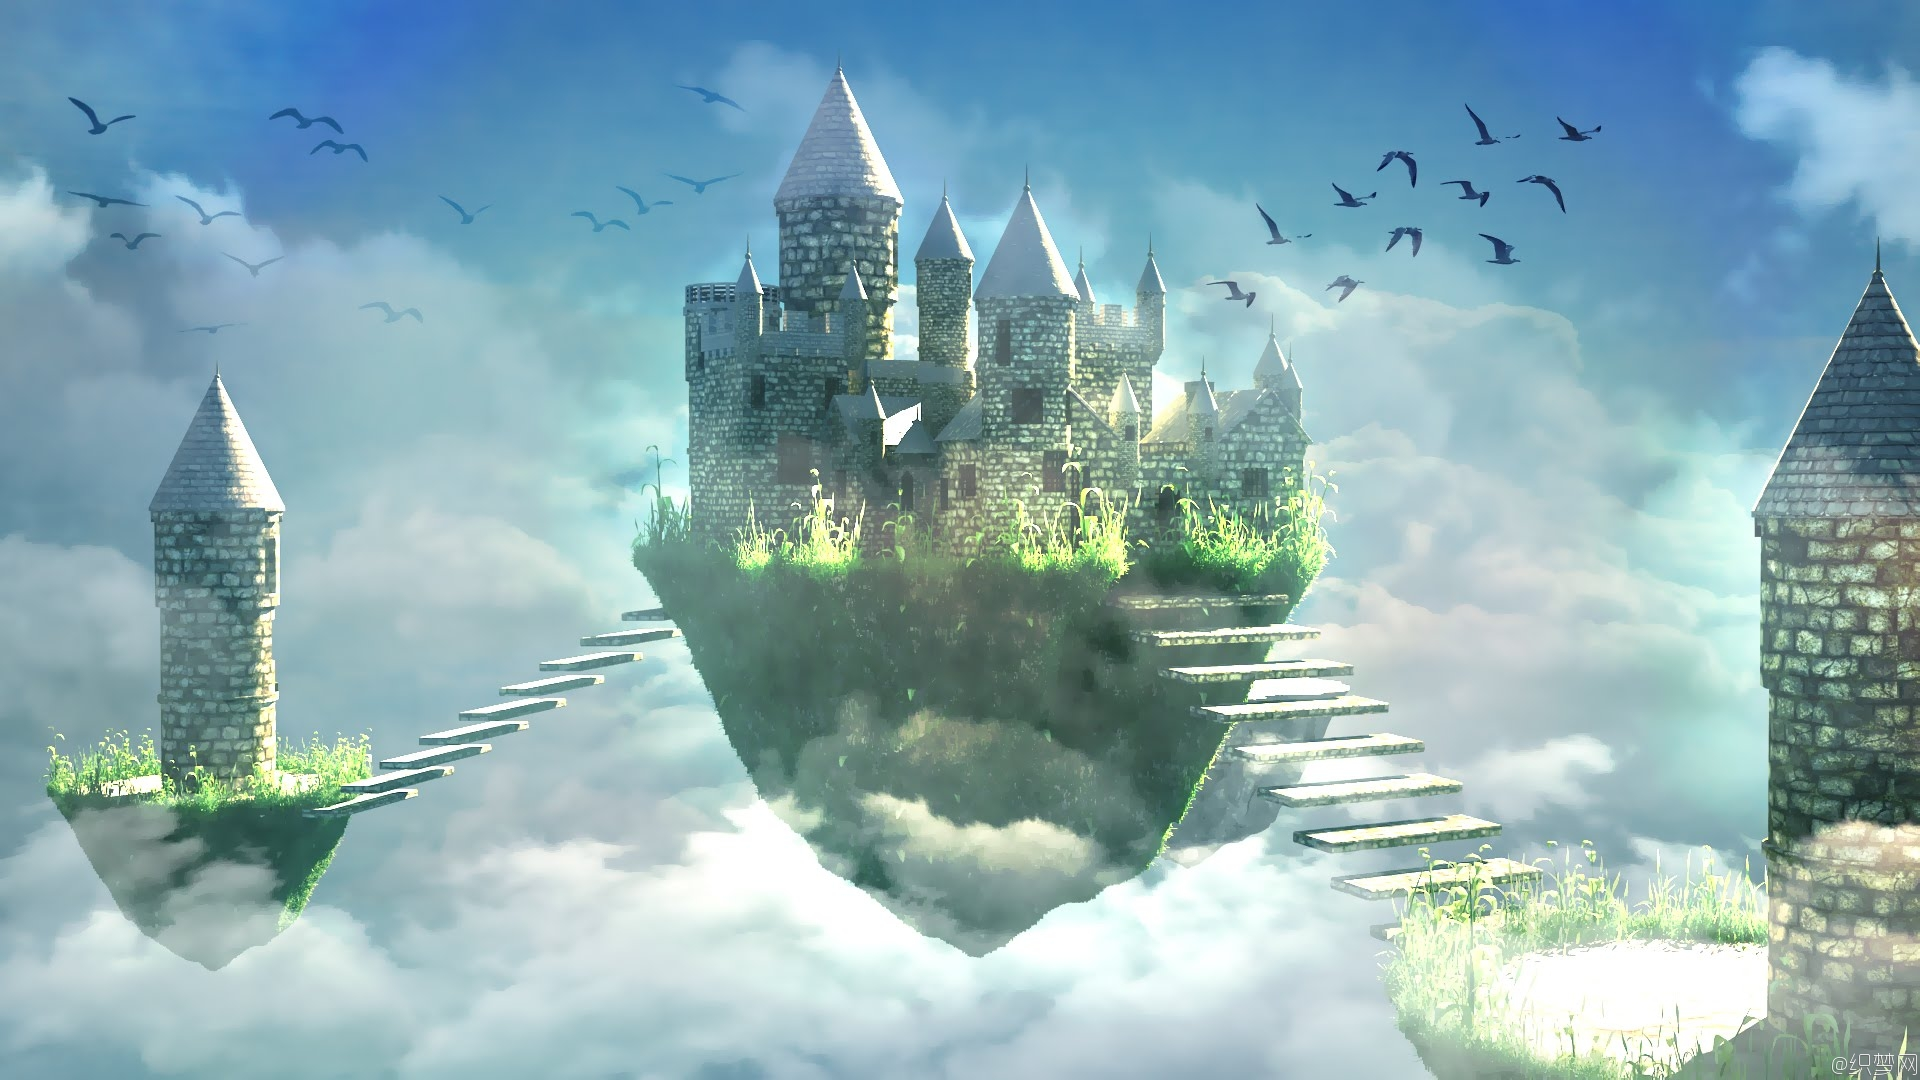 3ds max制作科幻城堡场景视频教程 - Making of fantasy castle 3ds max tutorial